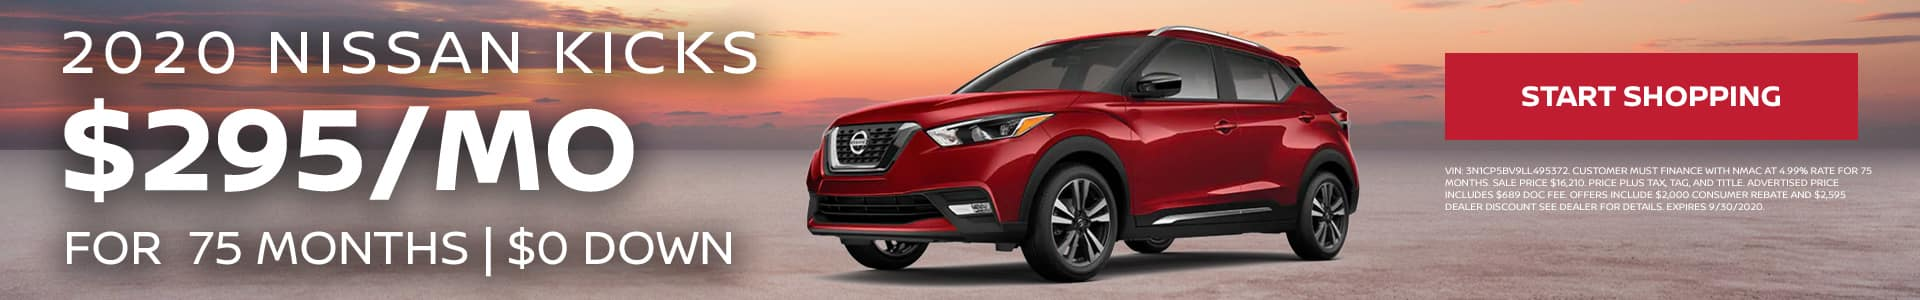 2020 Nissan Kicks - $295/mo for 75 months with $0 down